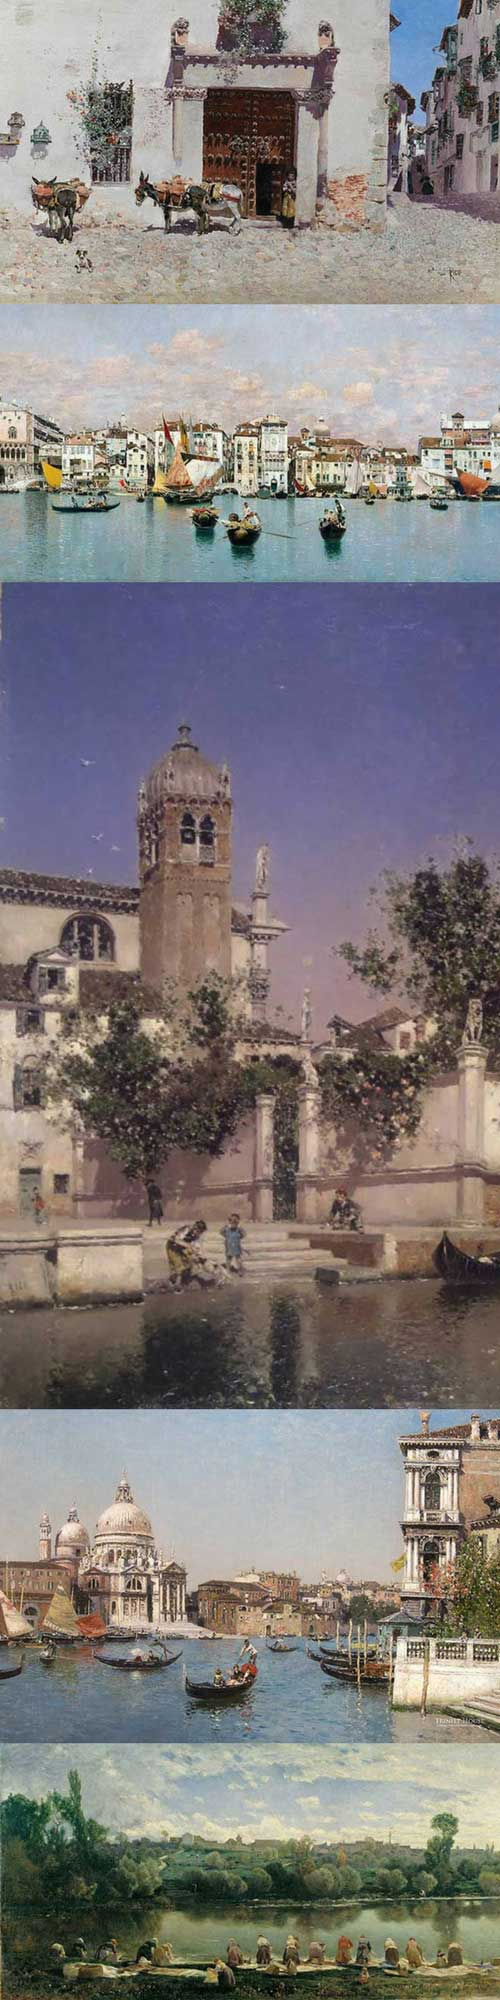 Elegant Realism By Martin Rico | Spanish Painter | Landscape Paintings | Cityscape Paintings | Art | Create